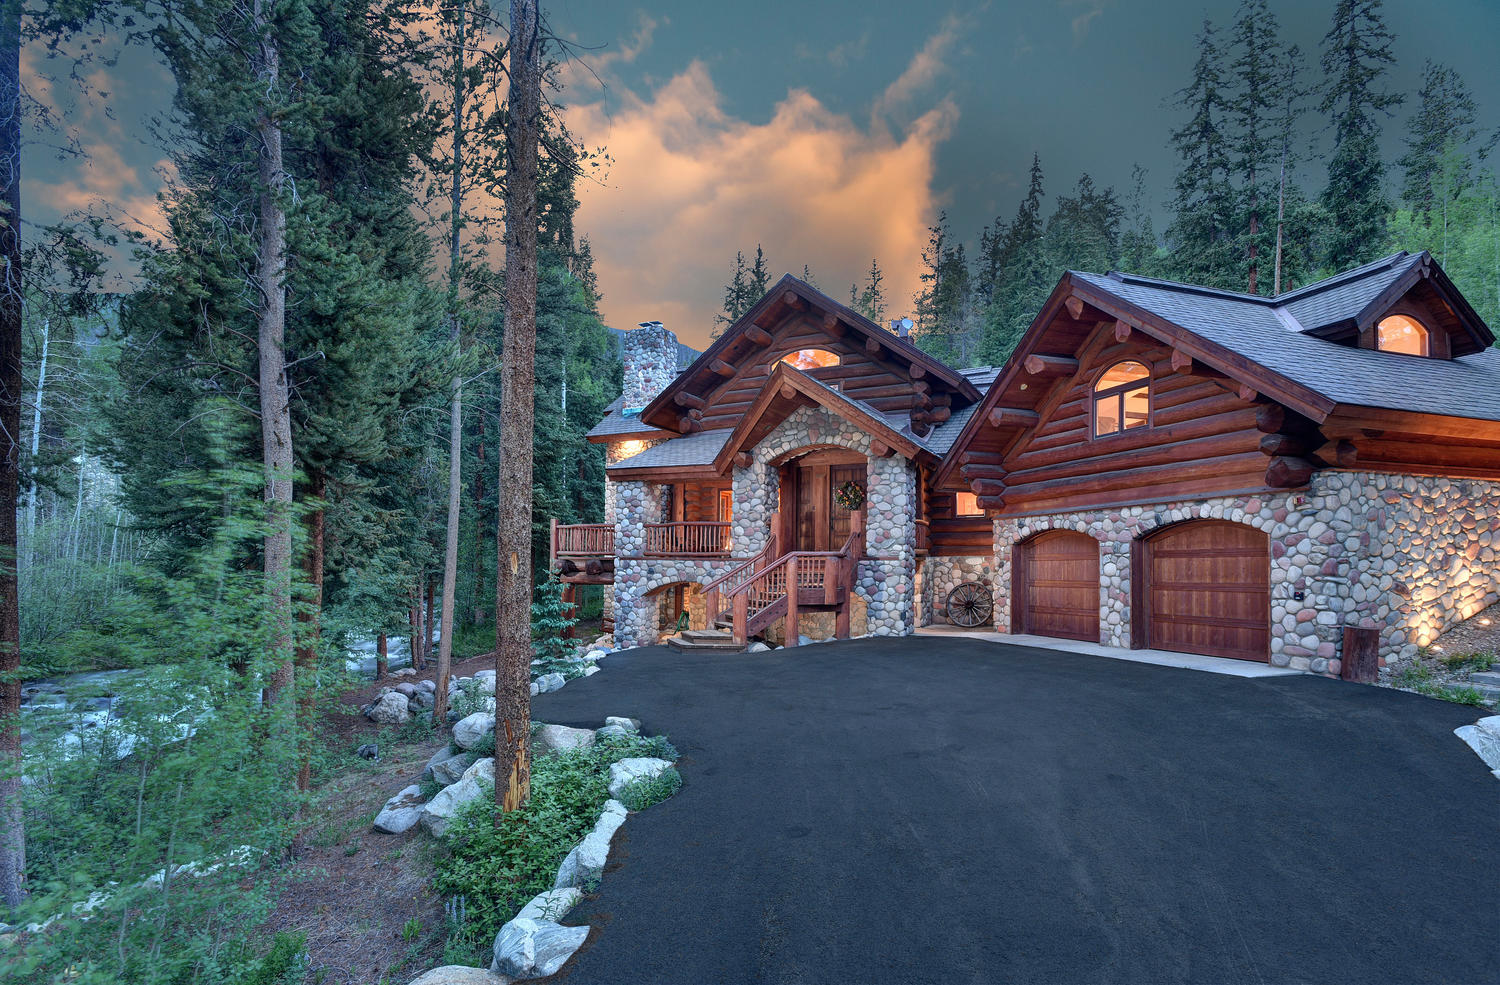 Single Family Home for Active at Beaver's Rest 75 Stoney Trail Keystone, Colorado 80435 United States